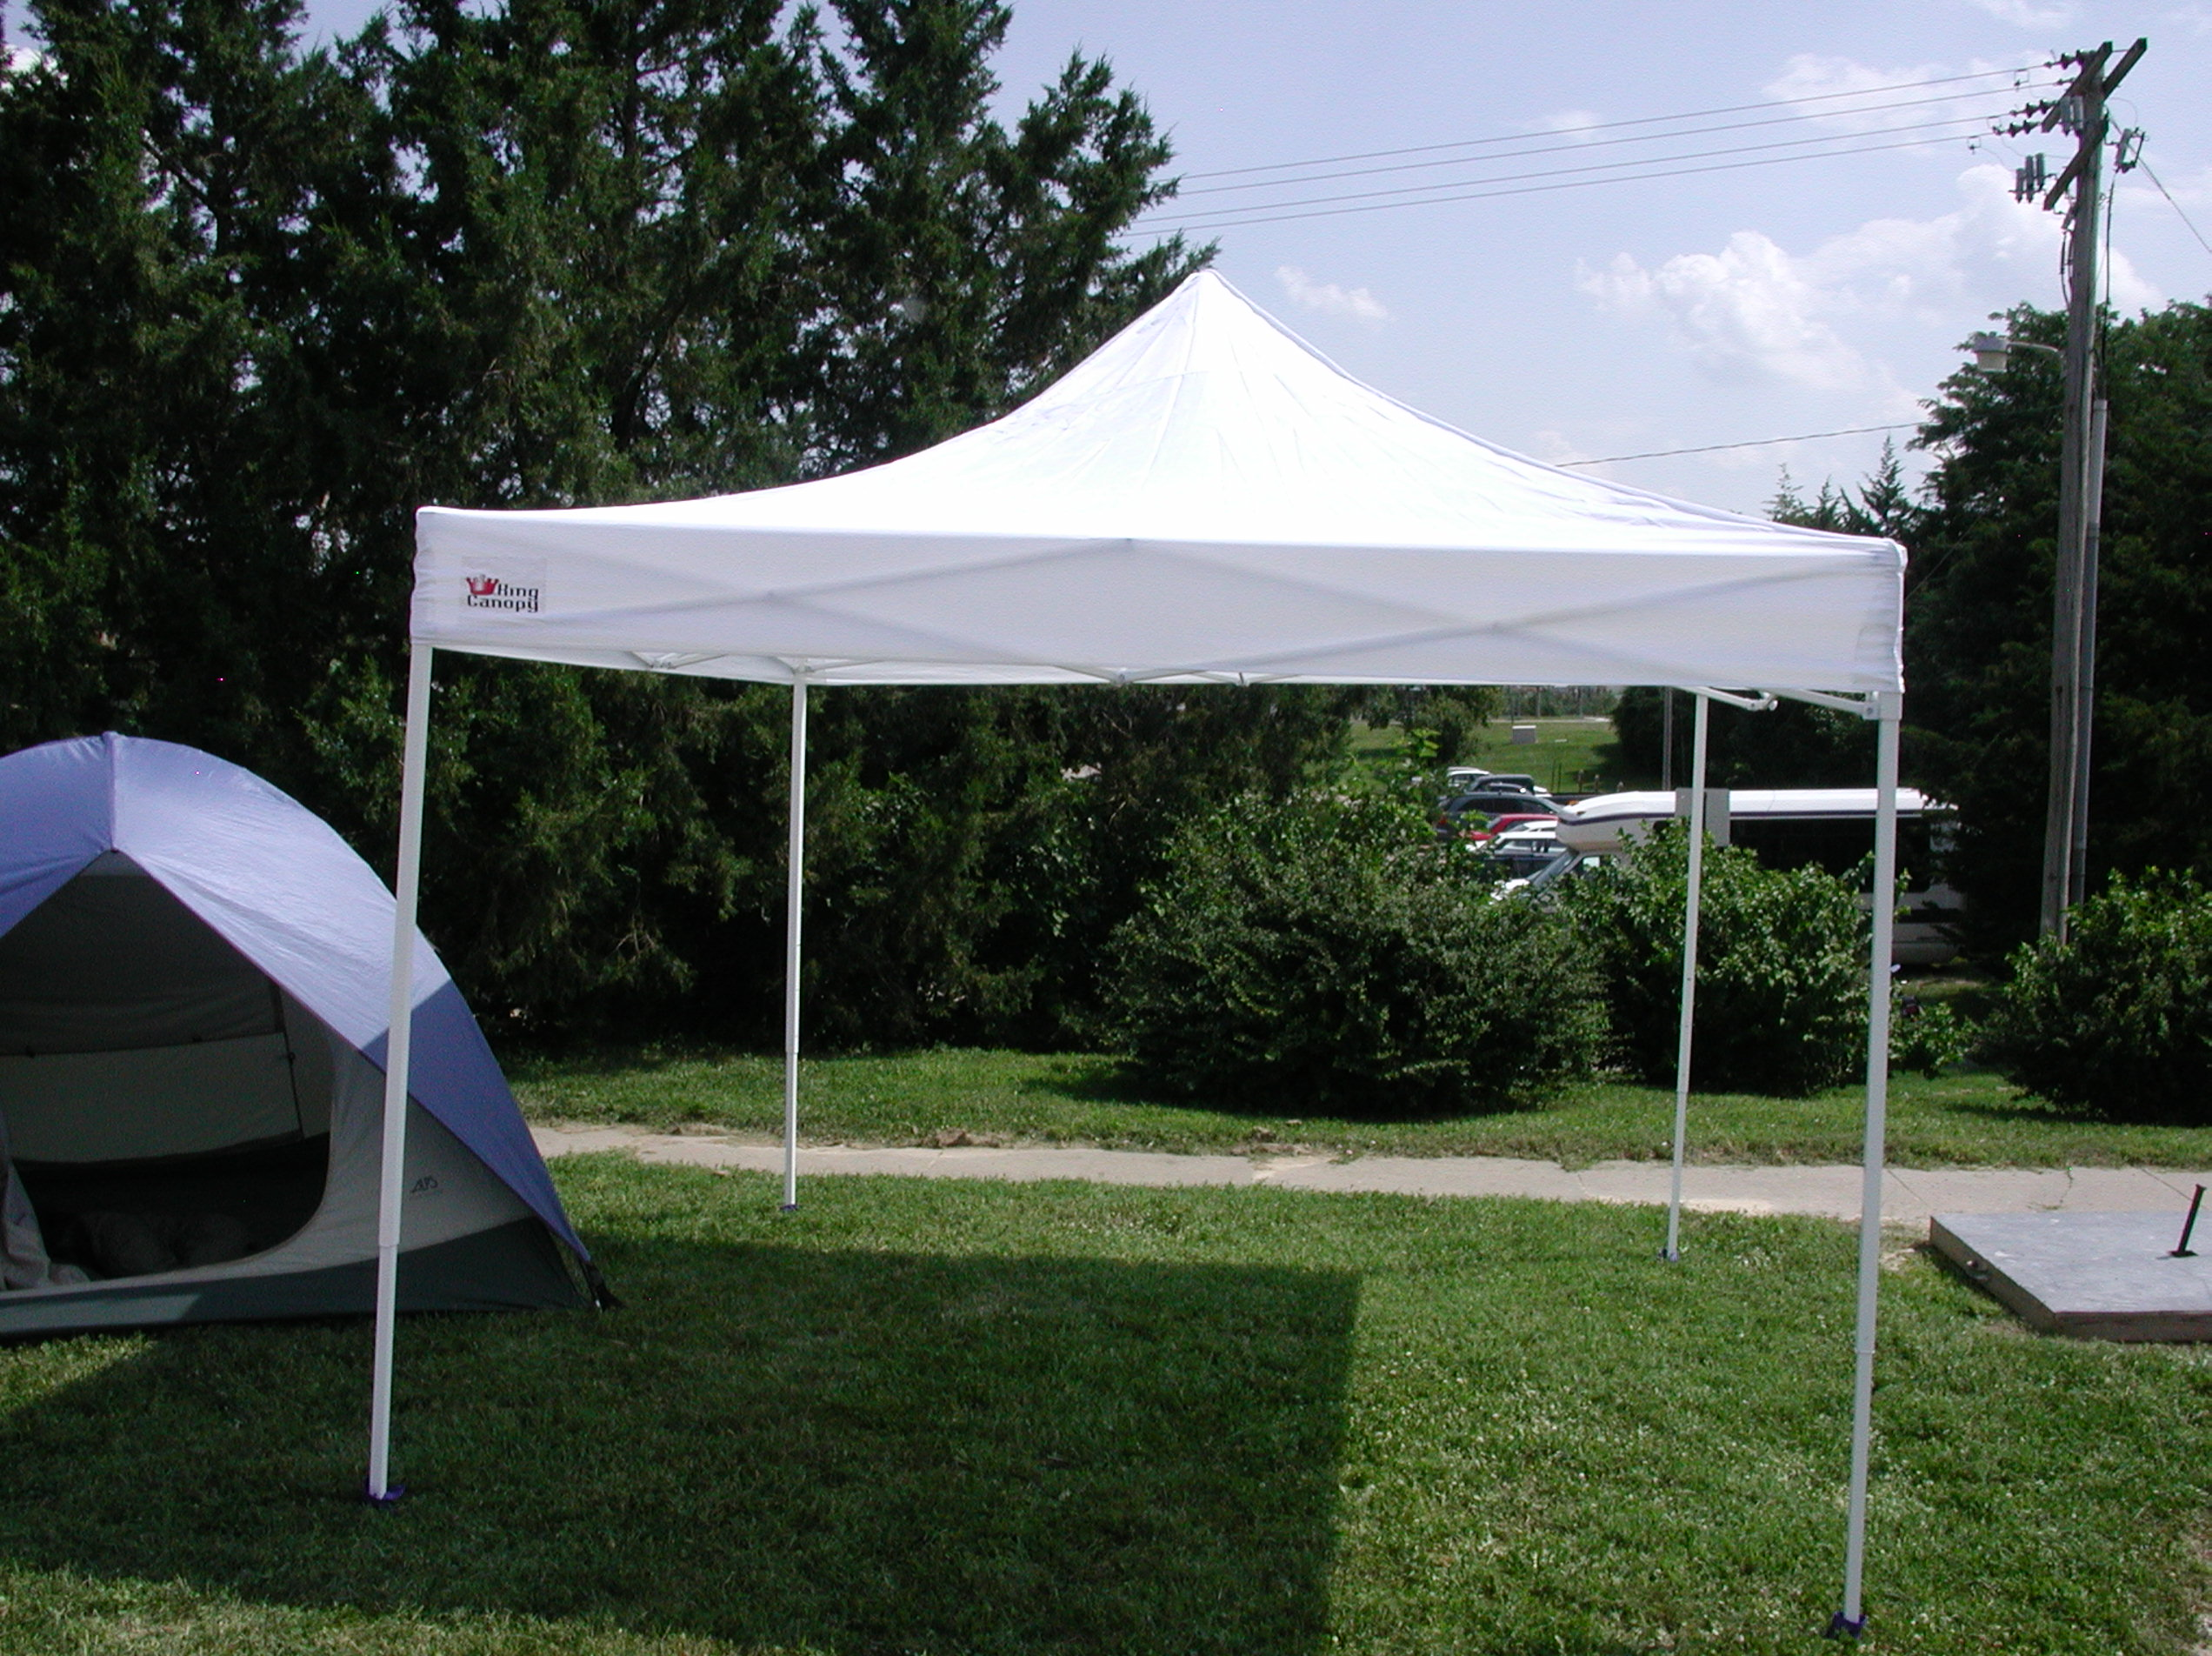 Texsport 2903 Dining Foldable, Portable Outdoor Canopy | eBay